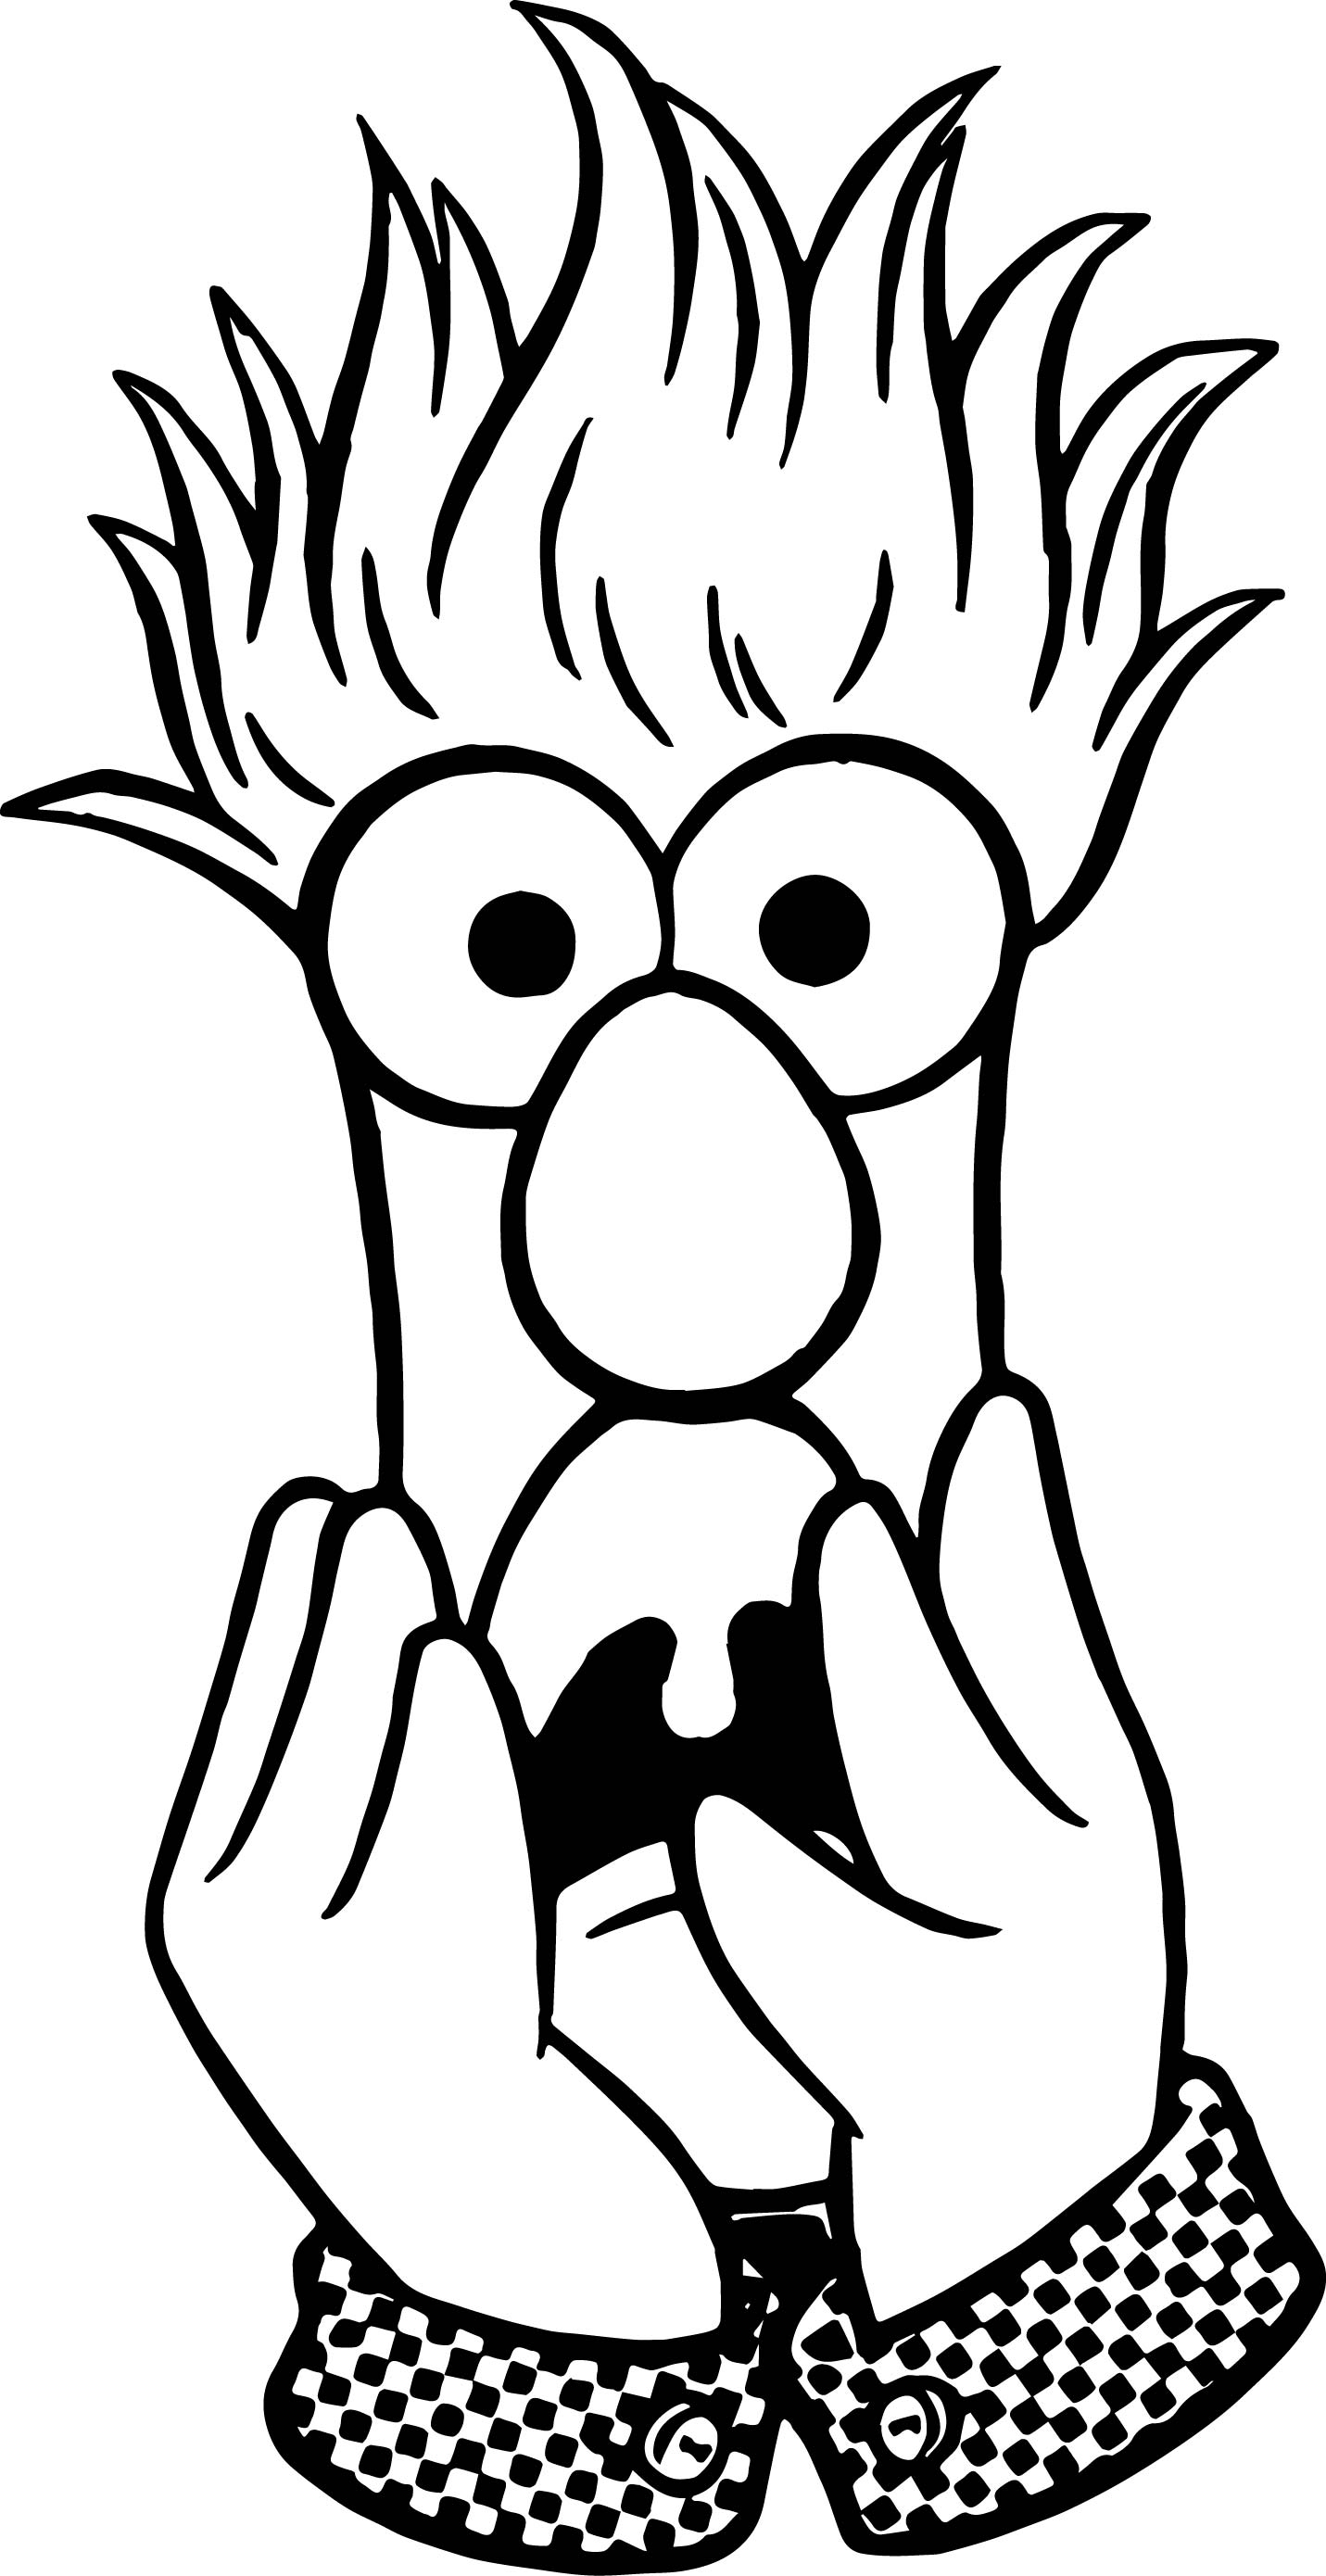 1431x2780 The Muppets Muppets Beaker Fear Coloring Pages Wecoloringpage